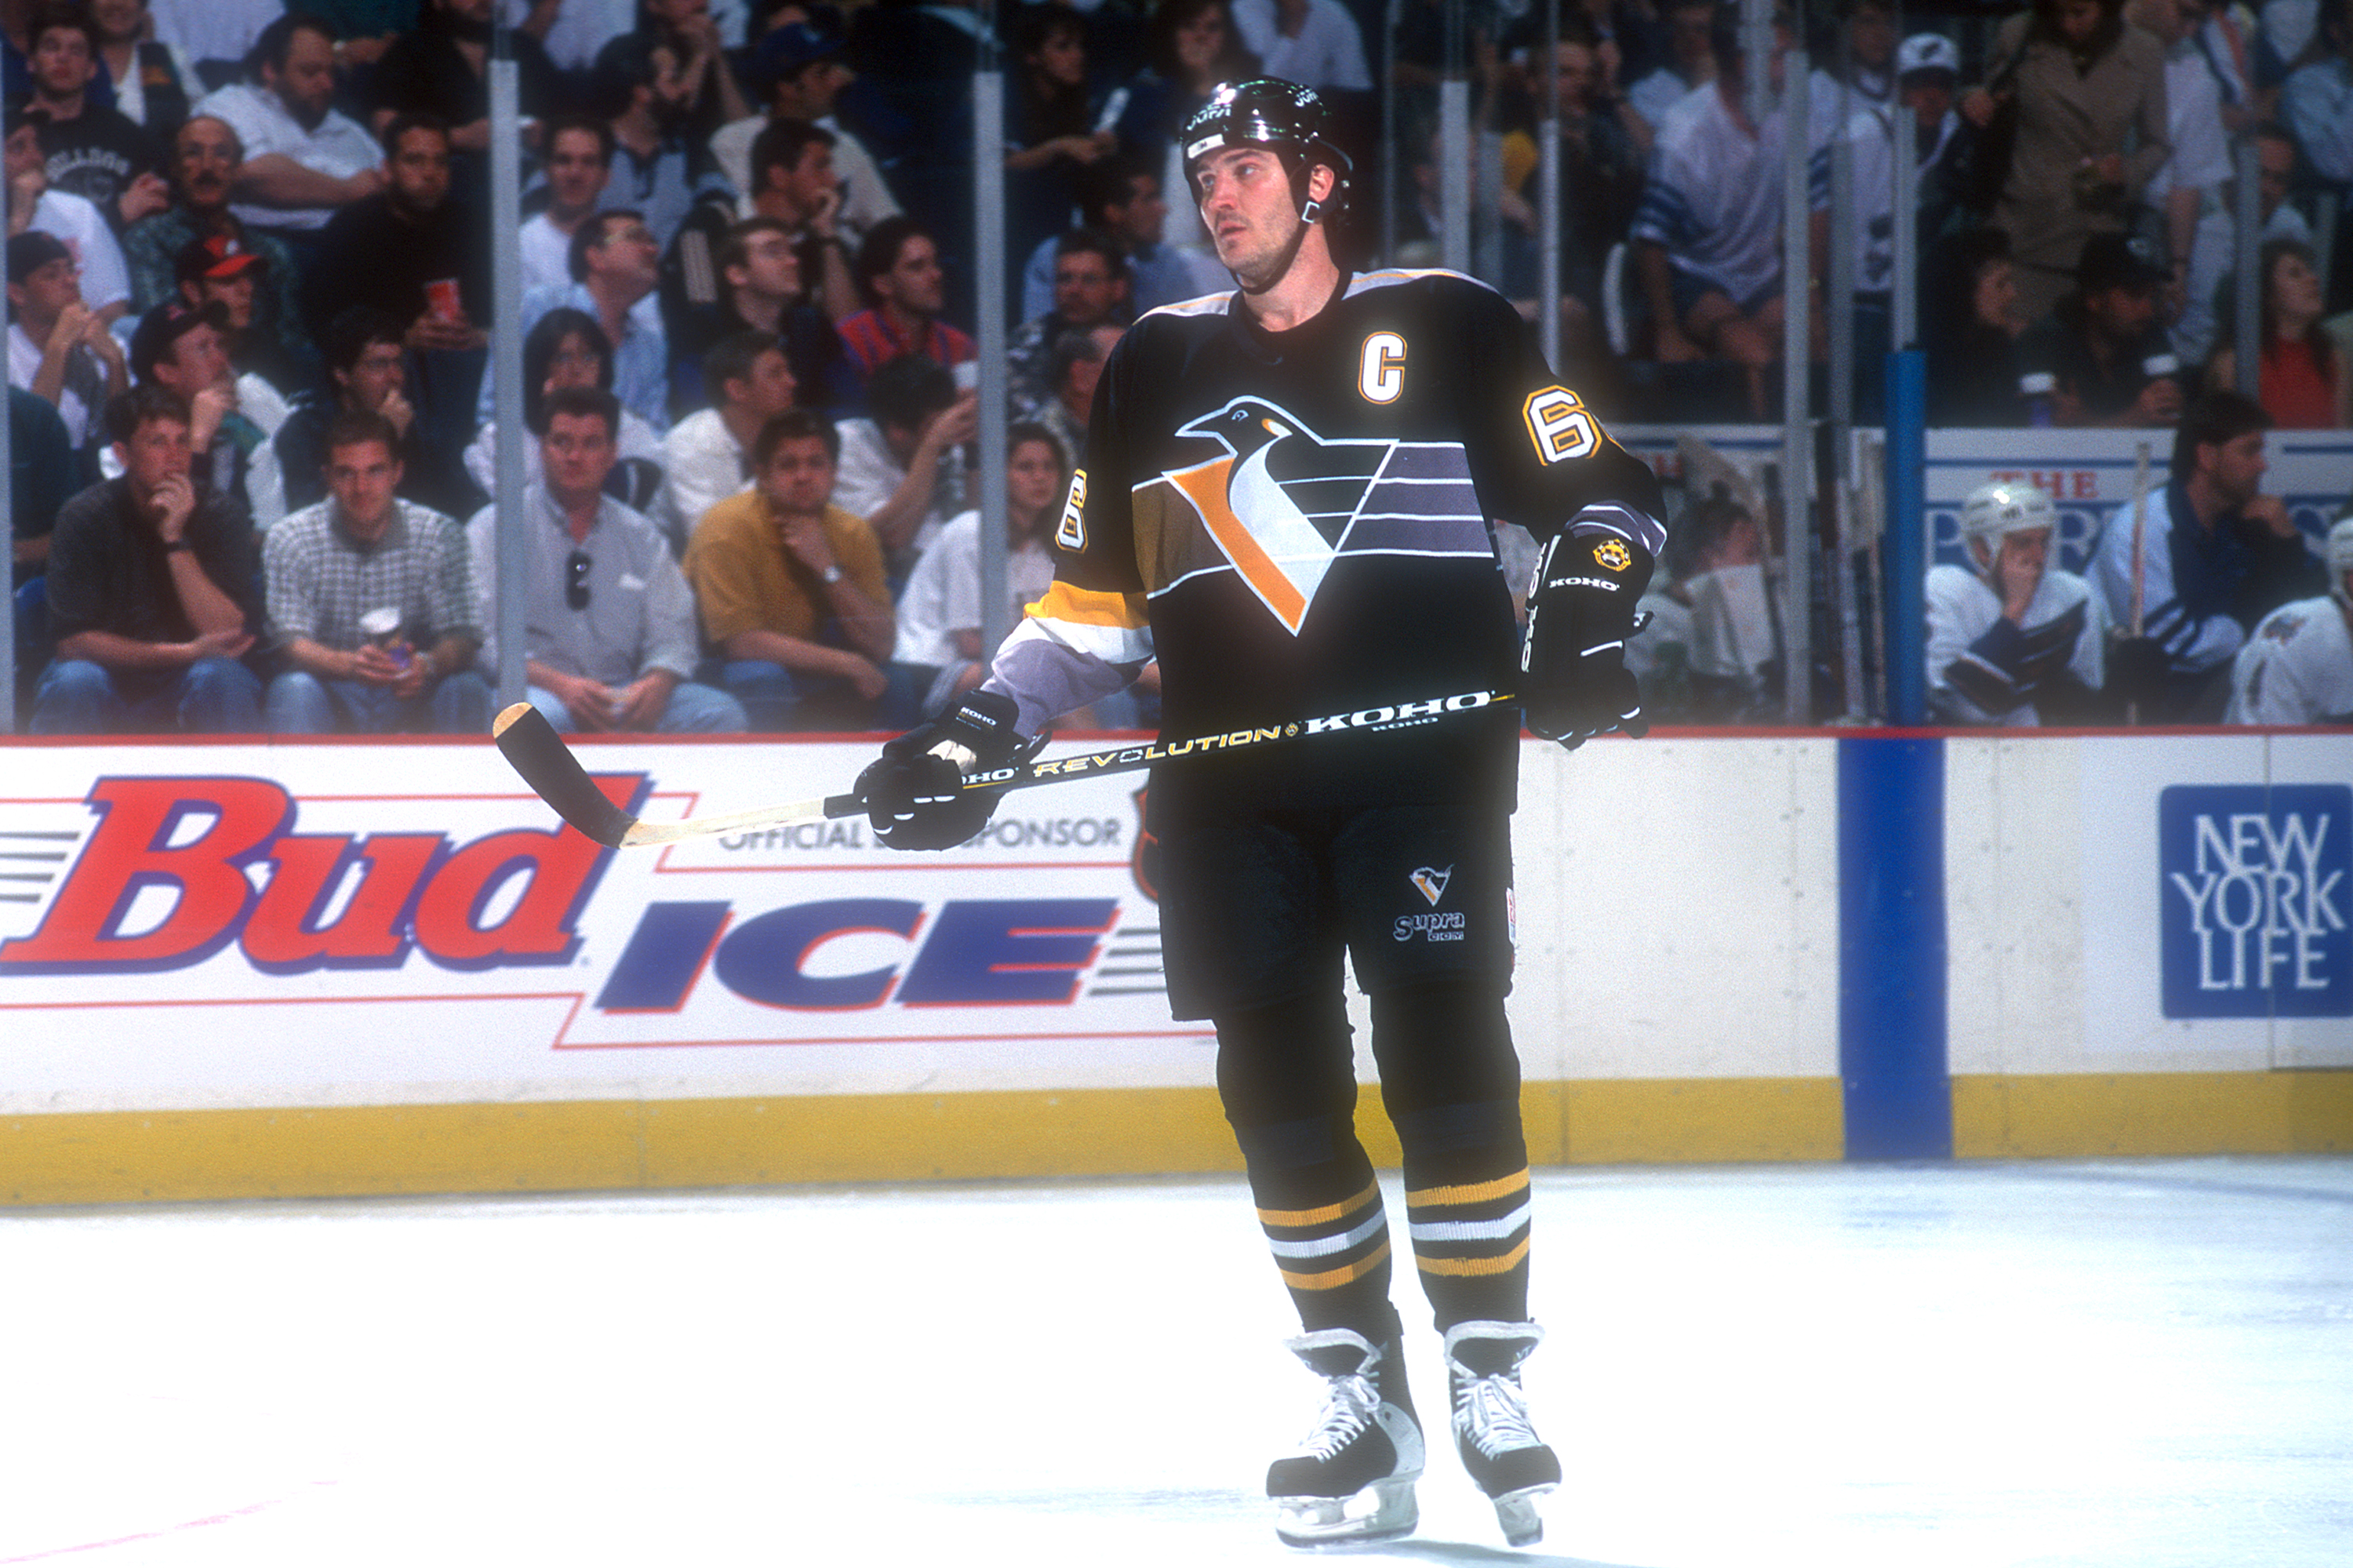 The Pittsburgh Penguins' Mario Lemieux waits for action to begin